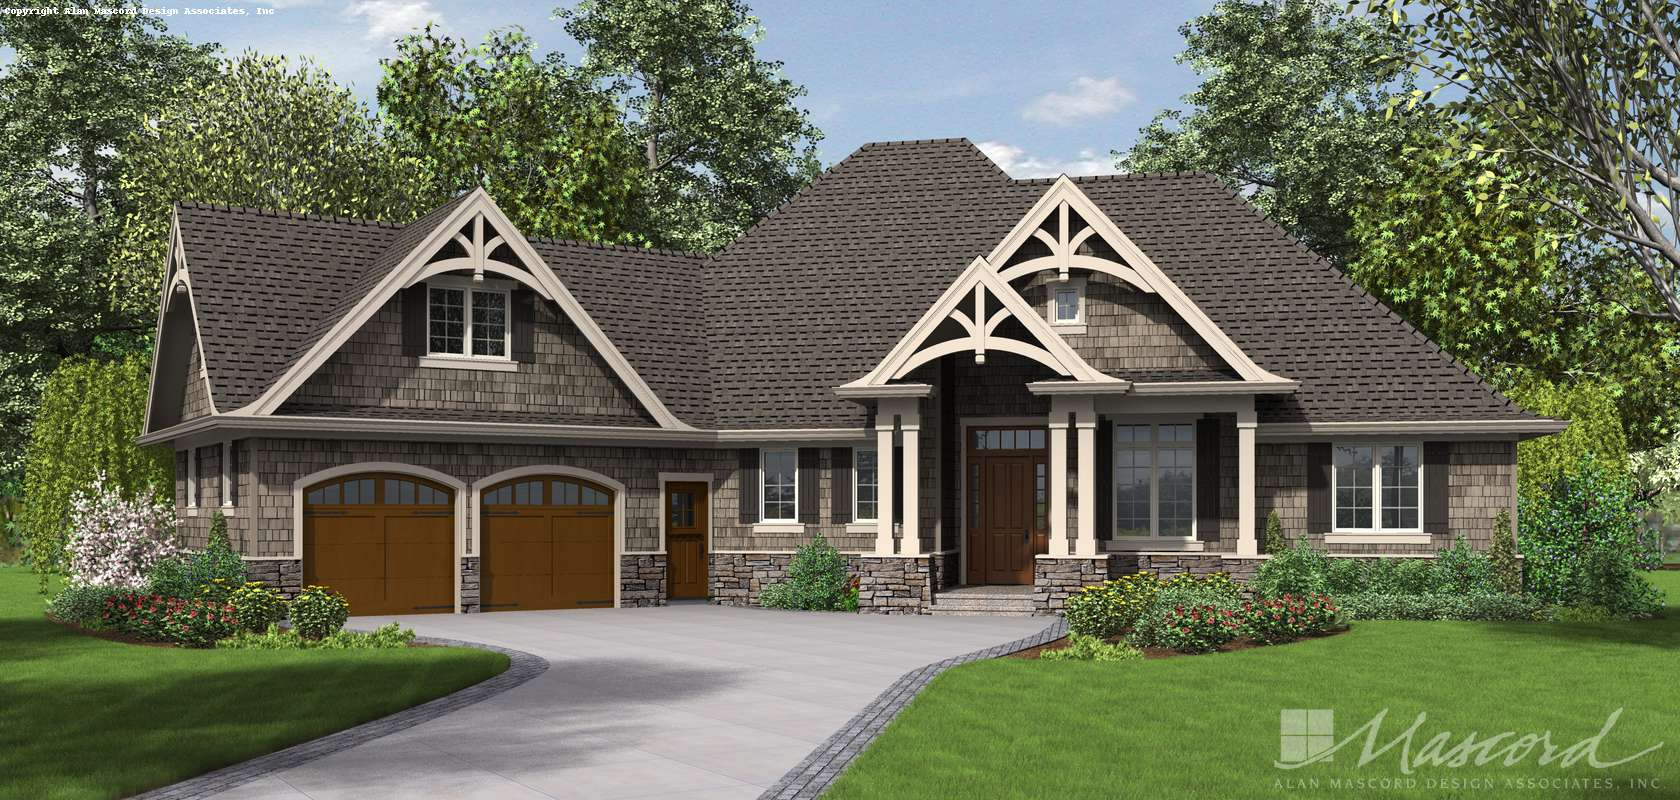 Mascord House Plan B1248: The Ripley